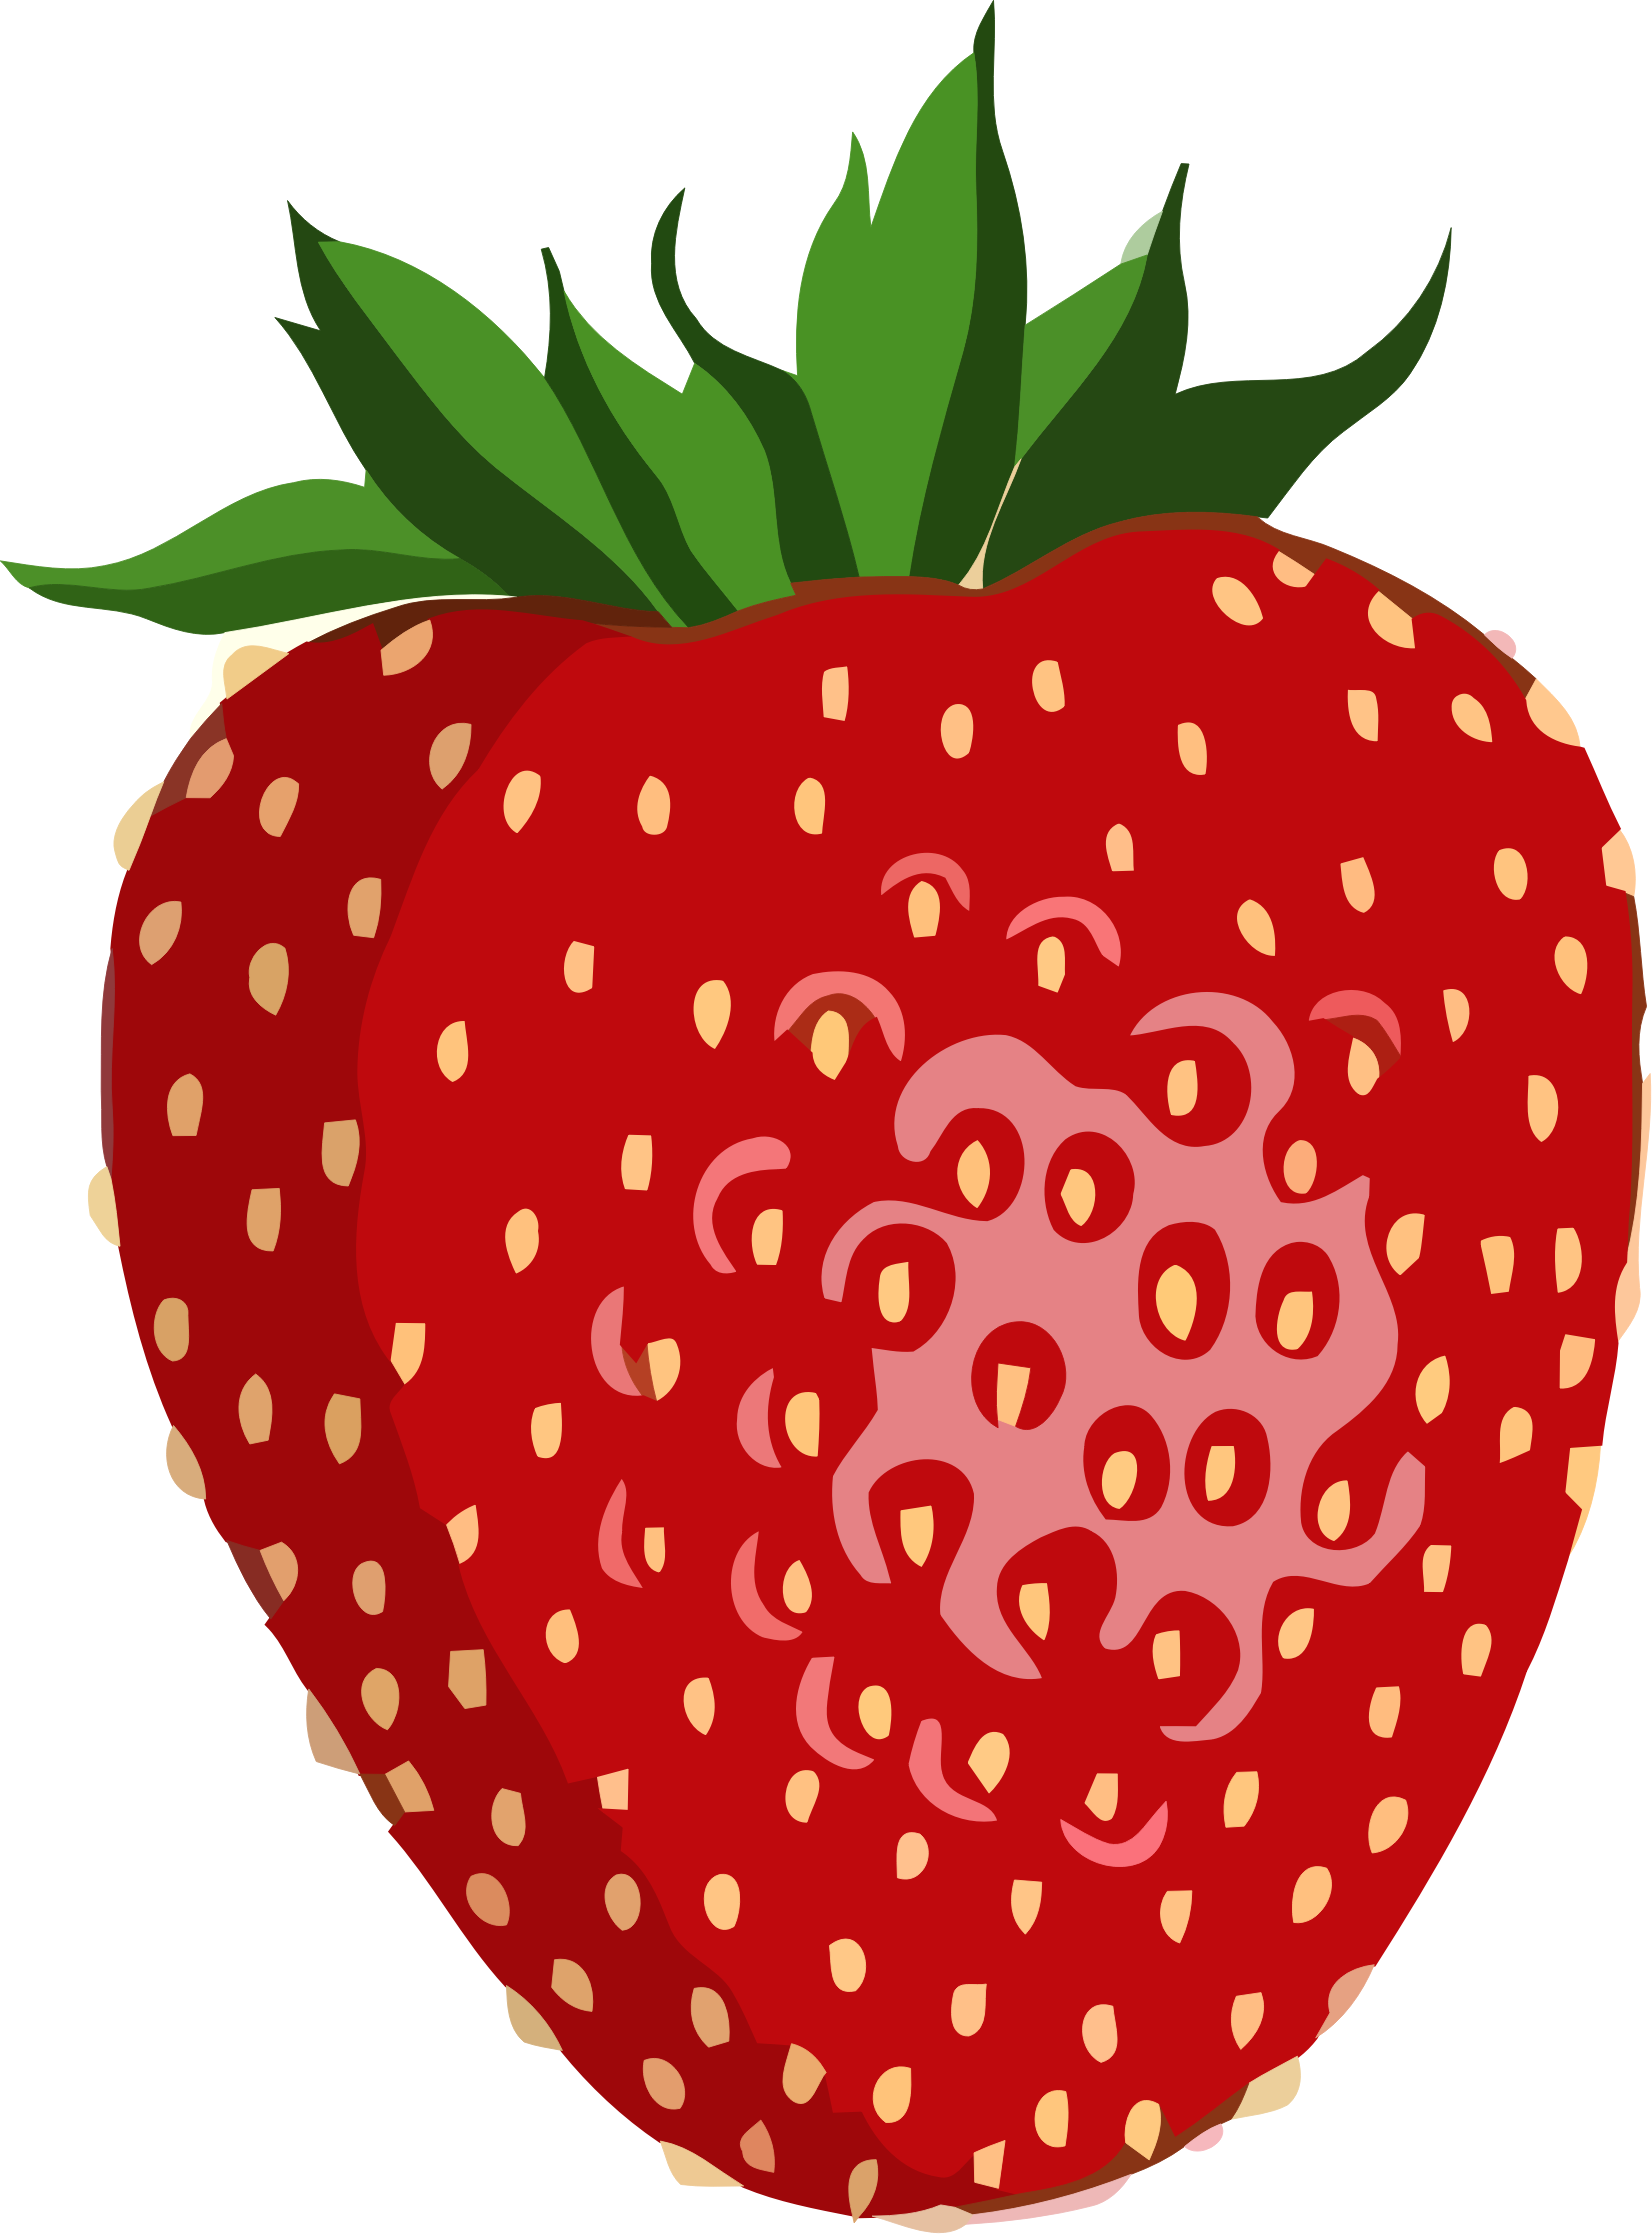 Shiny Strawberry by GDJ